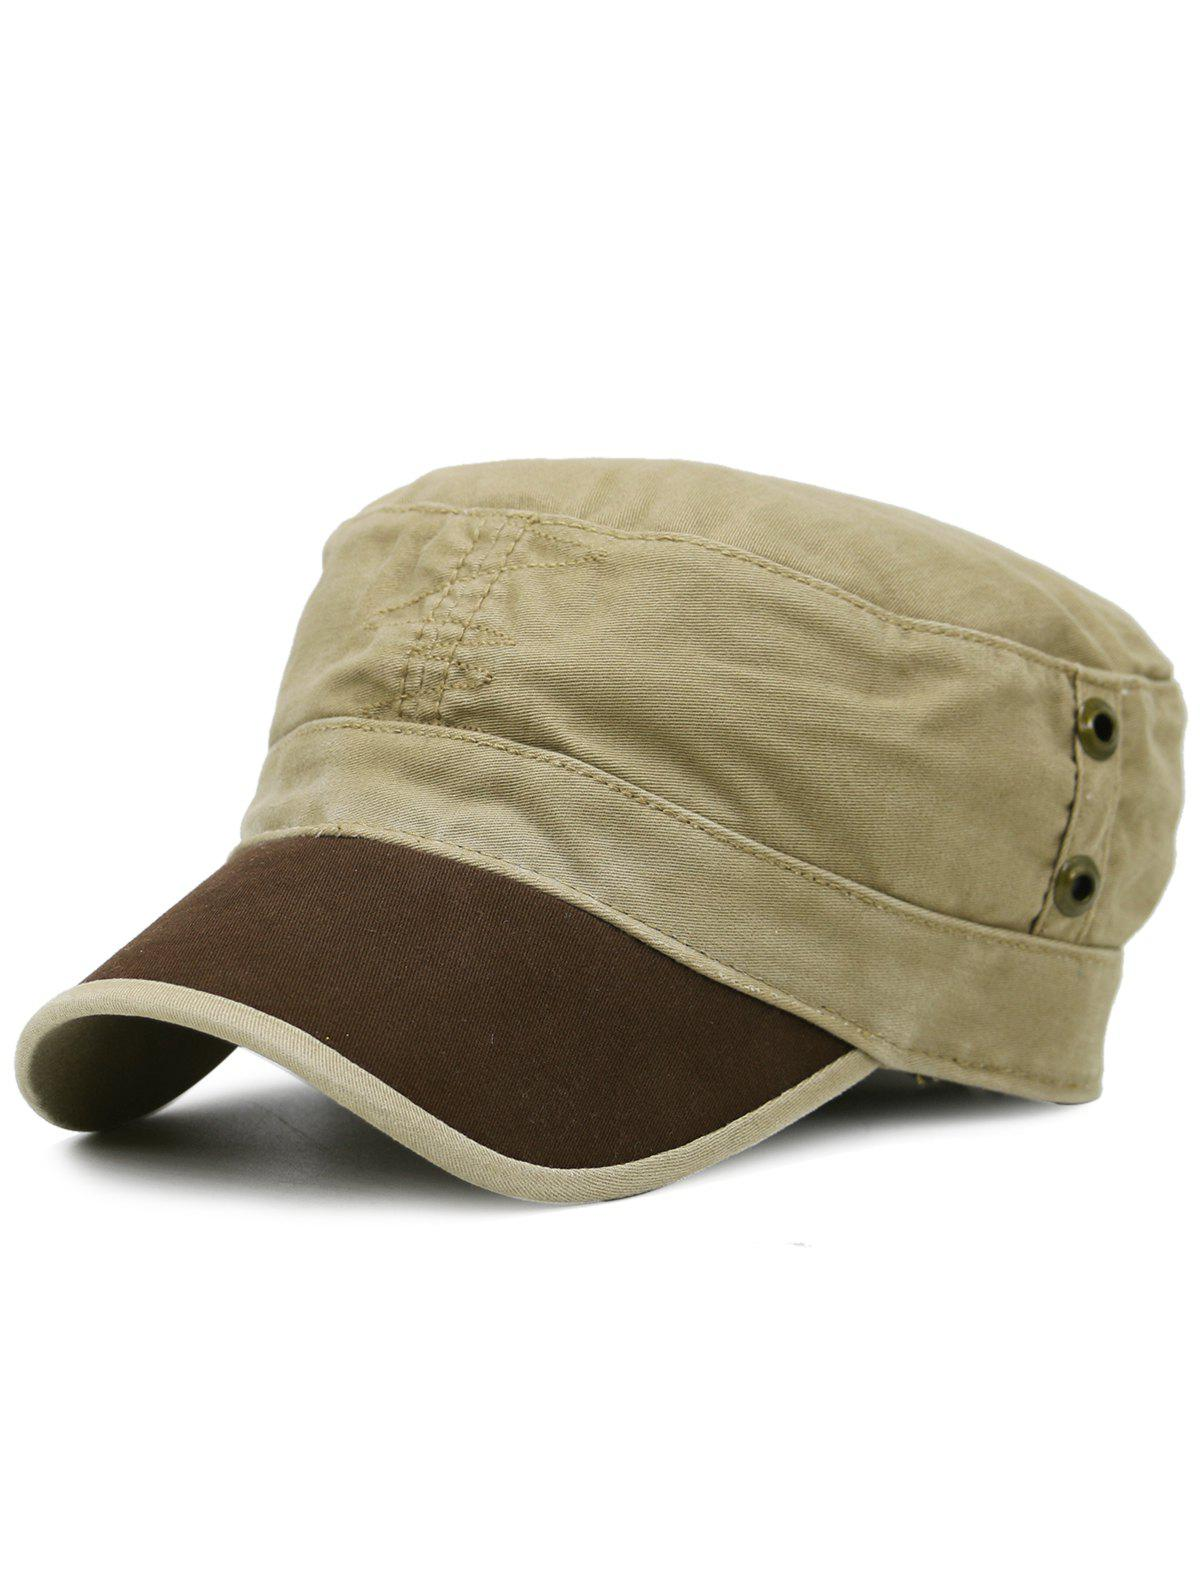 Latest Line Embroidery Adjustable Military Hat